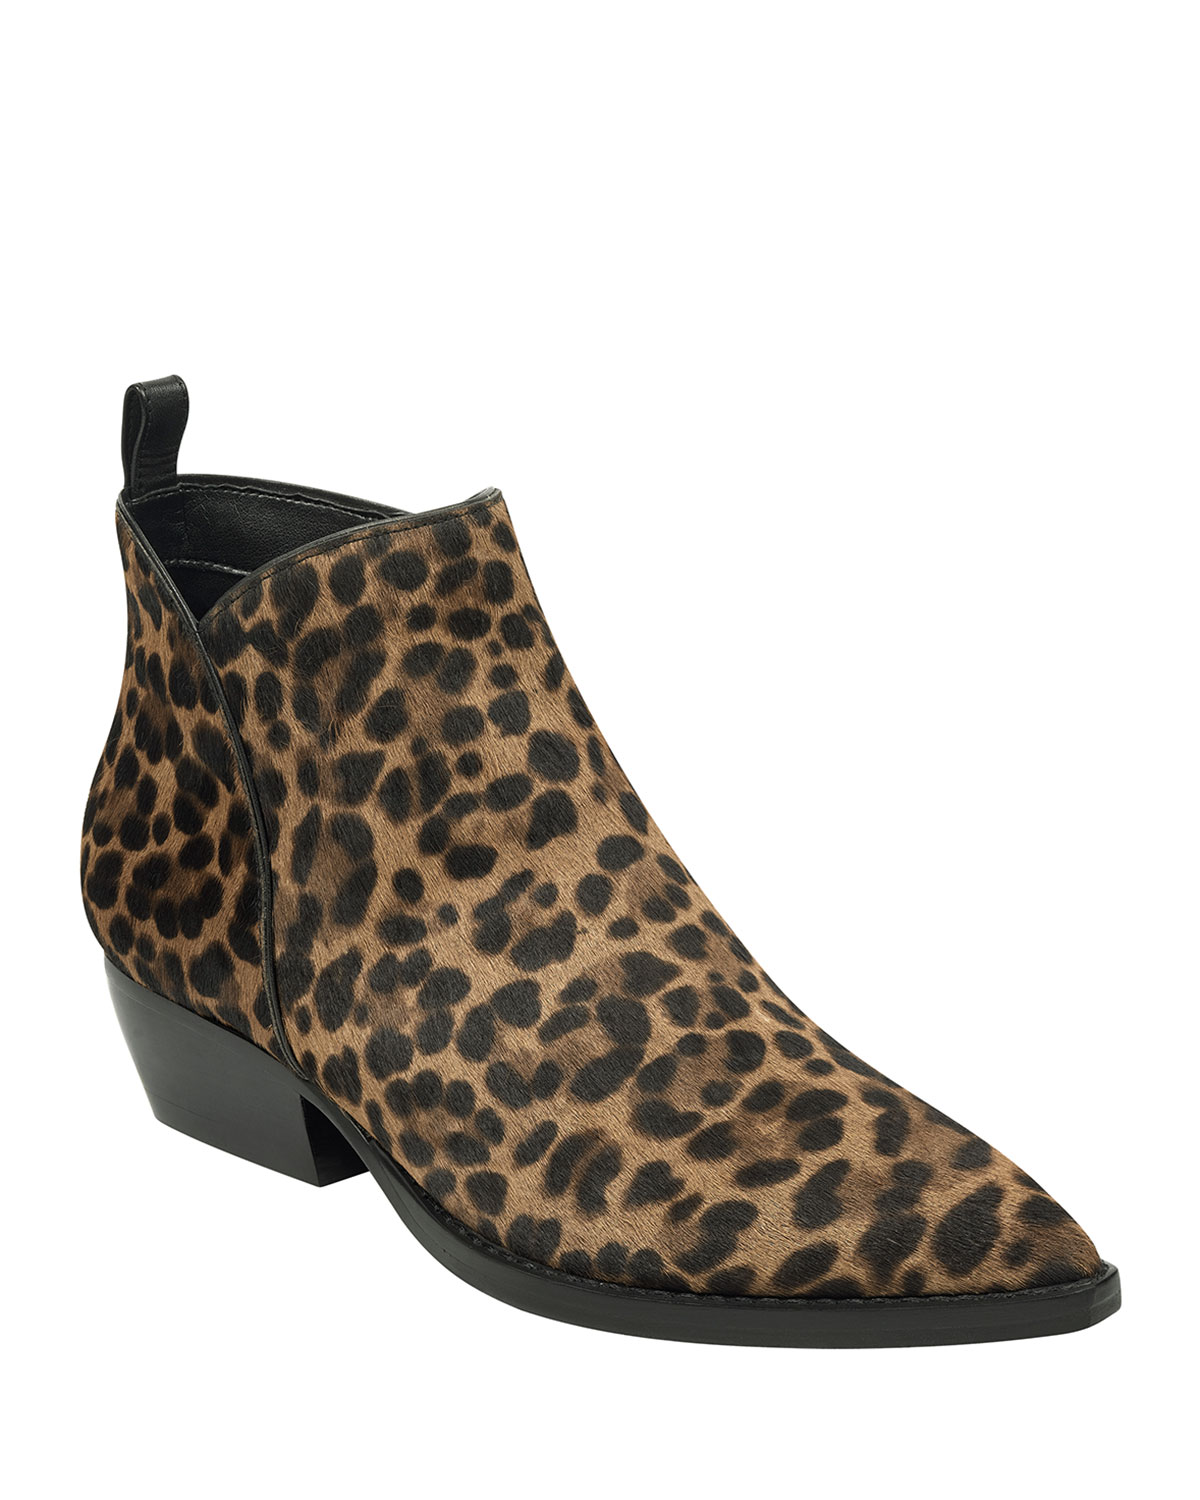 Obrraly Leopard Ankle Booties